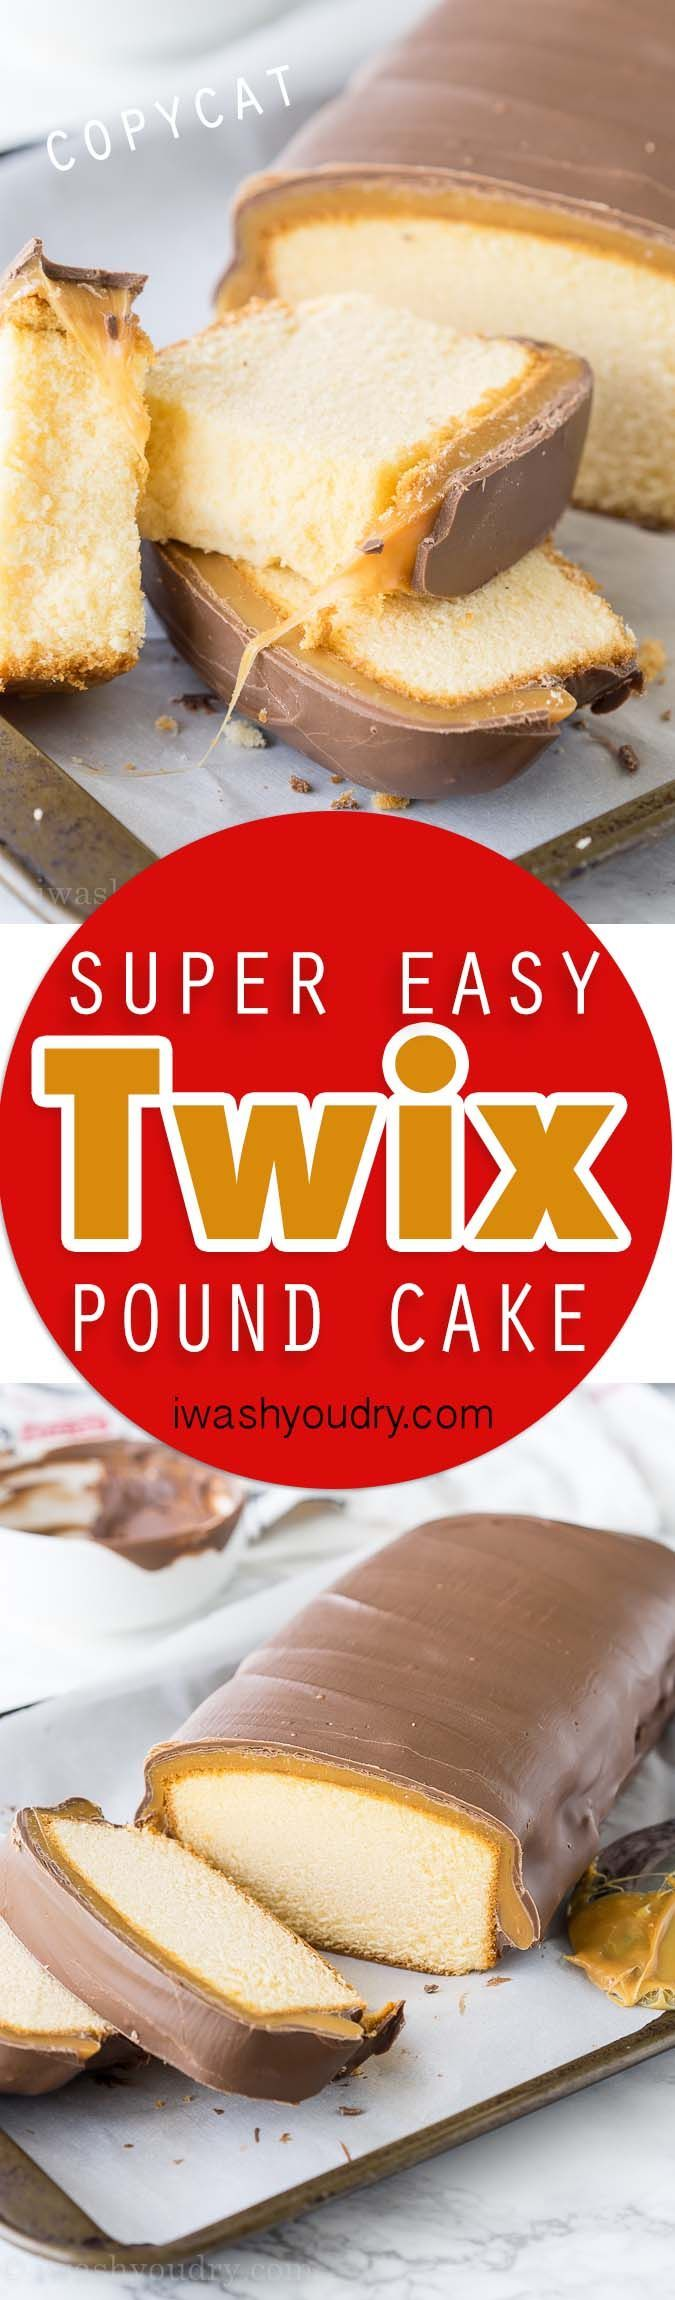 This super easy Twix Pound Cake is a quick dessert that only takes 4 ingredients! | Visit http://gwyl.io/ for more diy/kids/pets videos